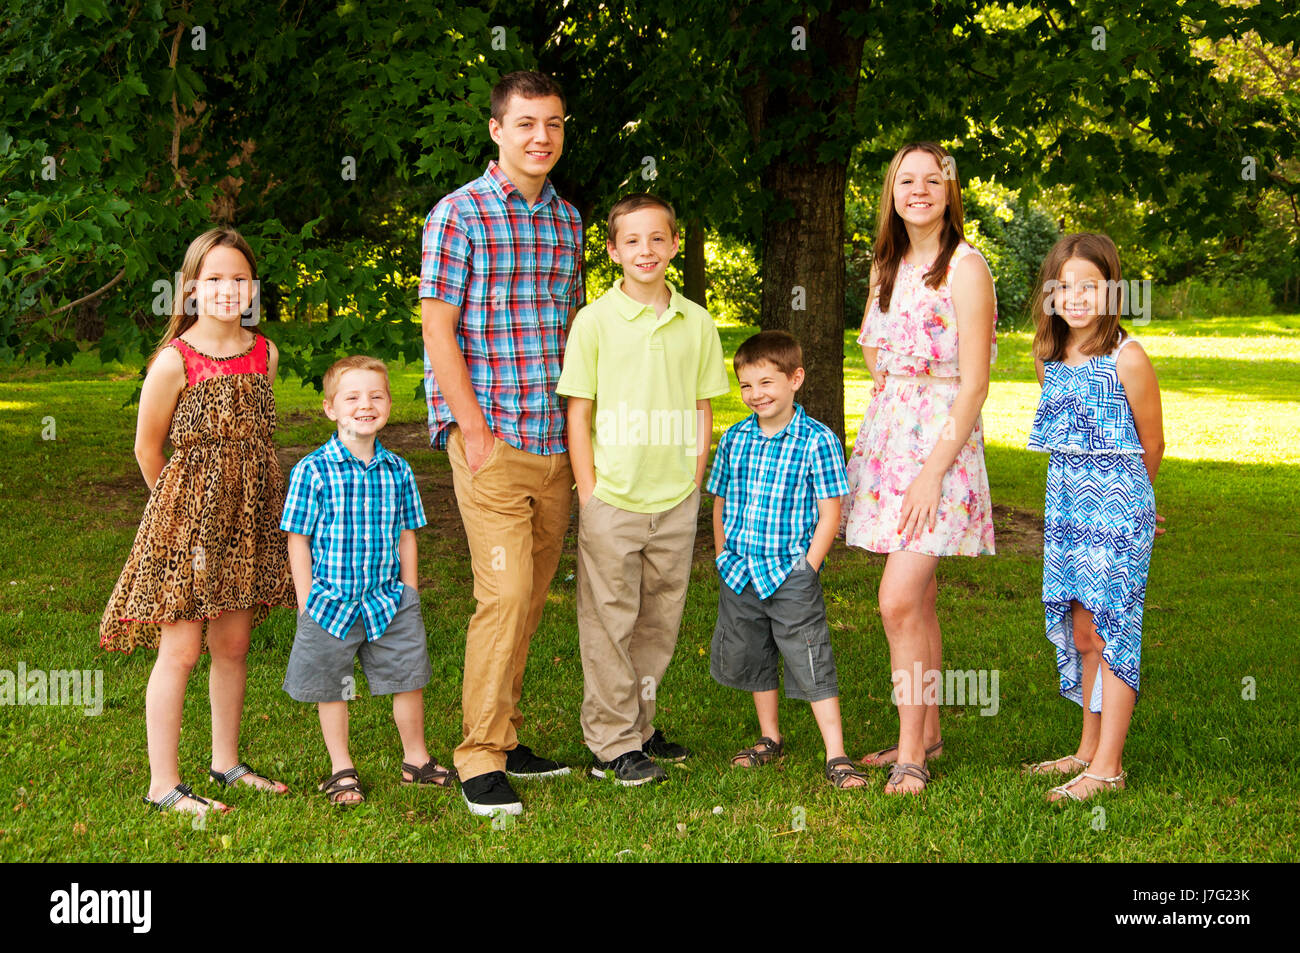 Seven siblings portrait - Stock Image